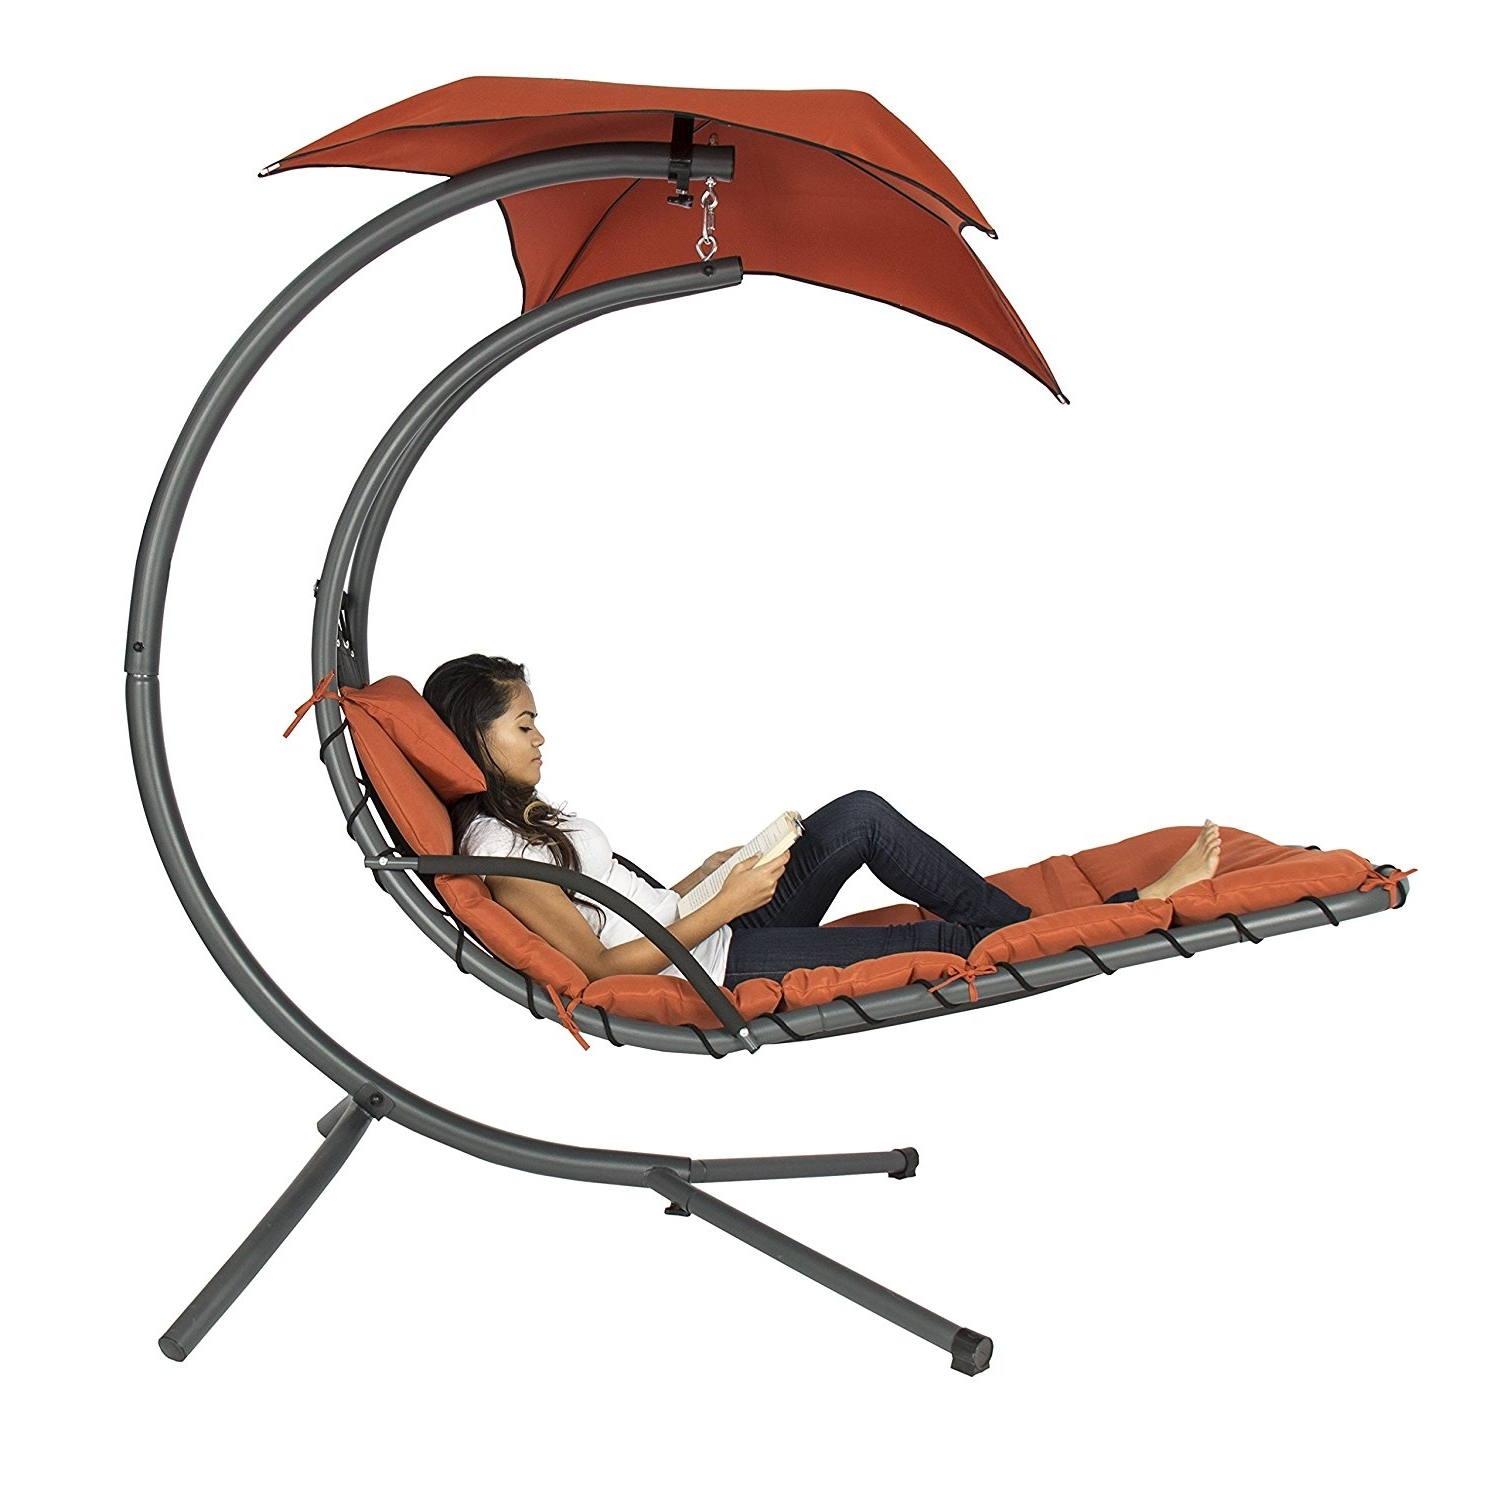 Most Recent Chaise Lounge Swing Chairs Inside Amazon: Best Choice Products Hanging Chaise Lounger Chair Arc (View 10 of 15)